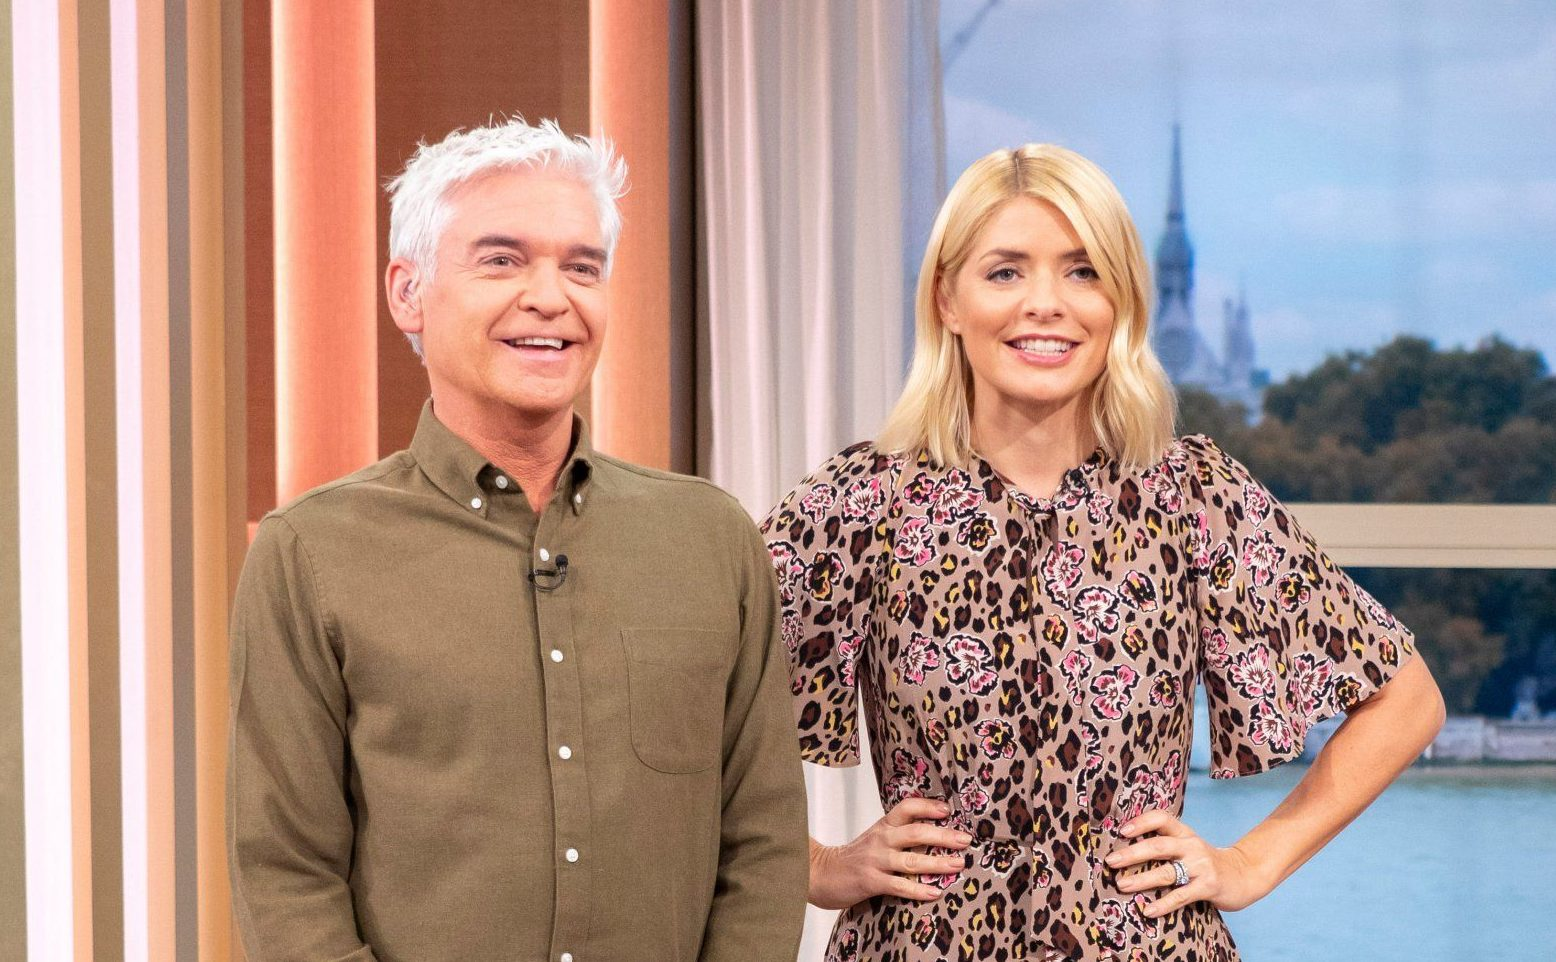 Editorial use only Mandatory Credit: Photo by Ken McKay/ITV/REX (9937103bx) Phillip Schofield and Holly Willoughby 'This Morning' TV show, London, UK - 18 Oct 2018